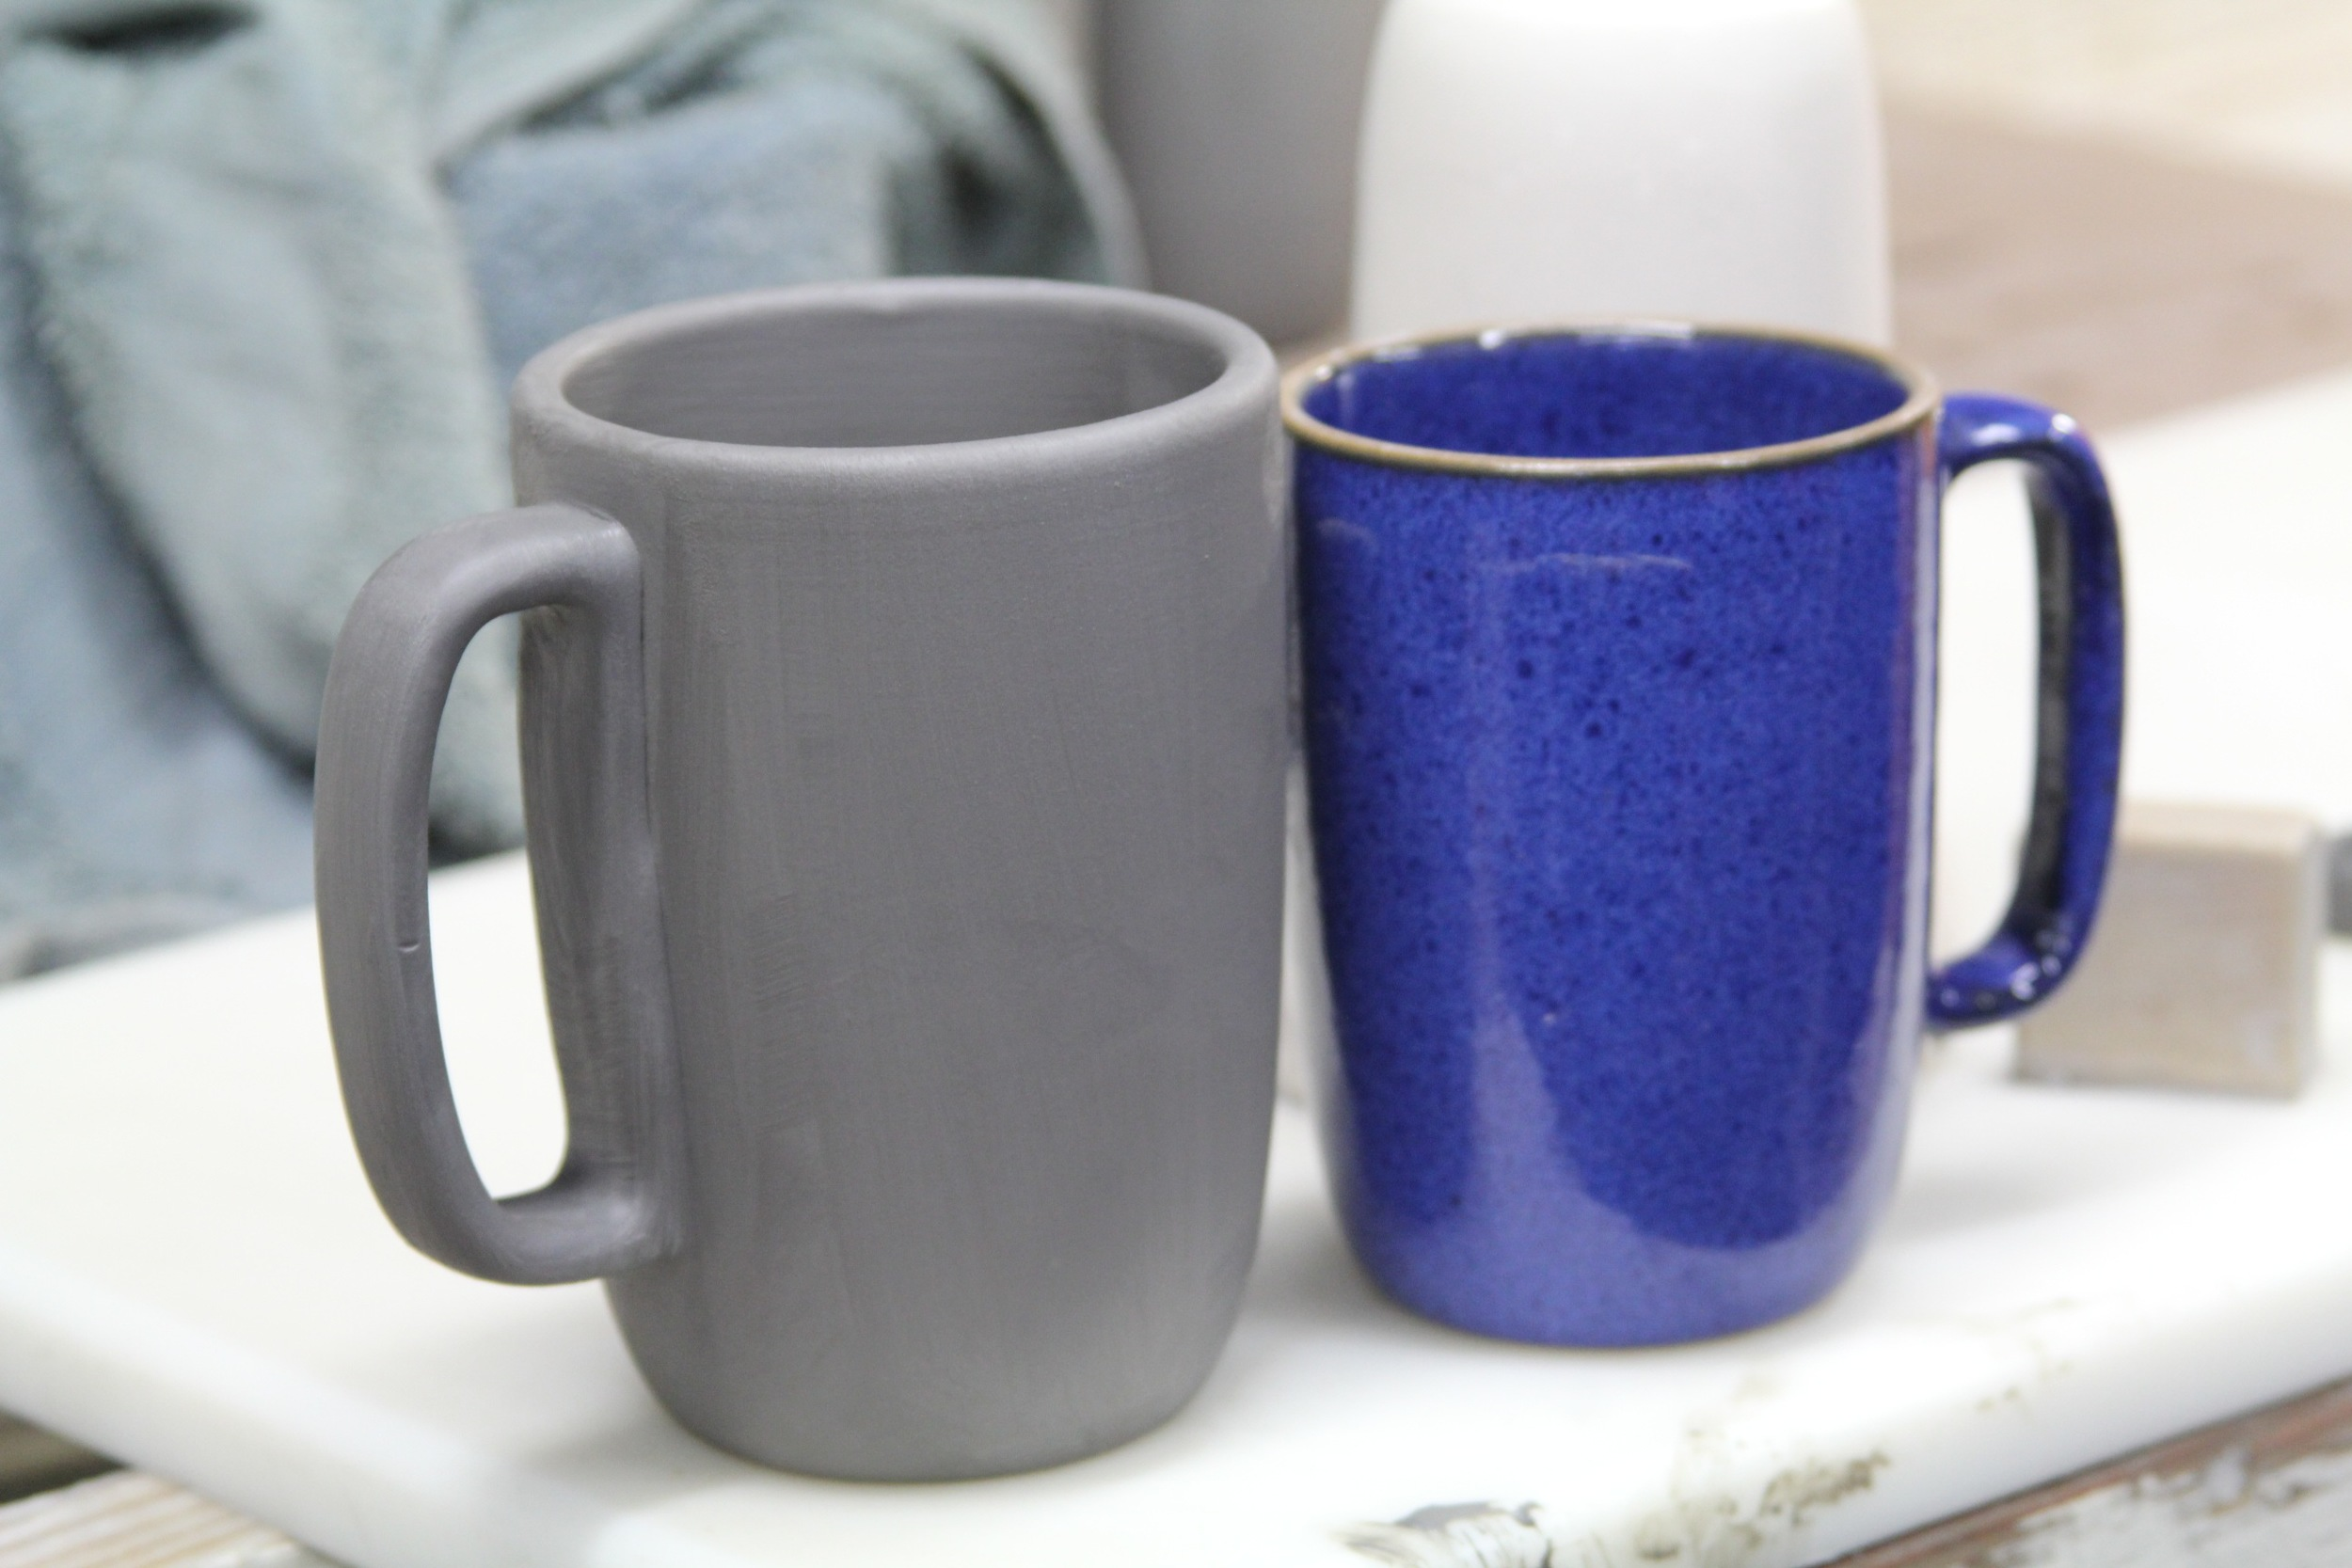 The mugs shrink significantly in size after a firing in the kiln.